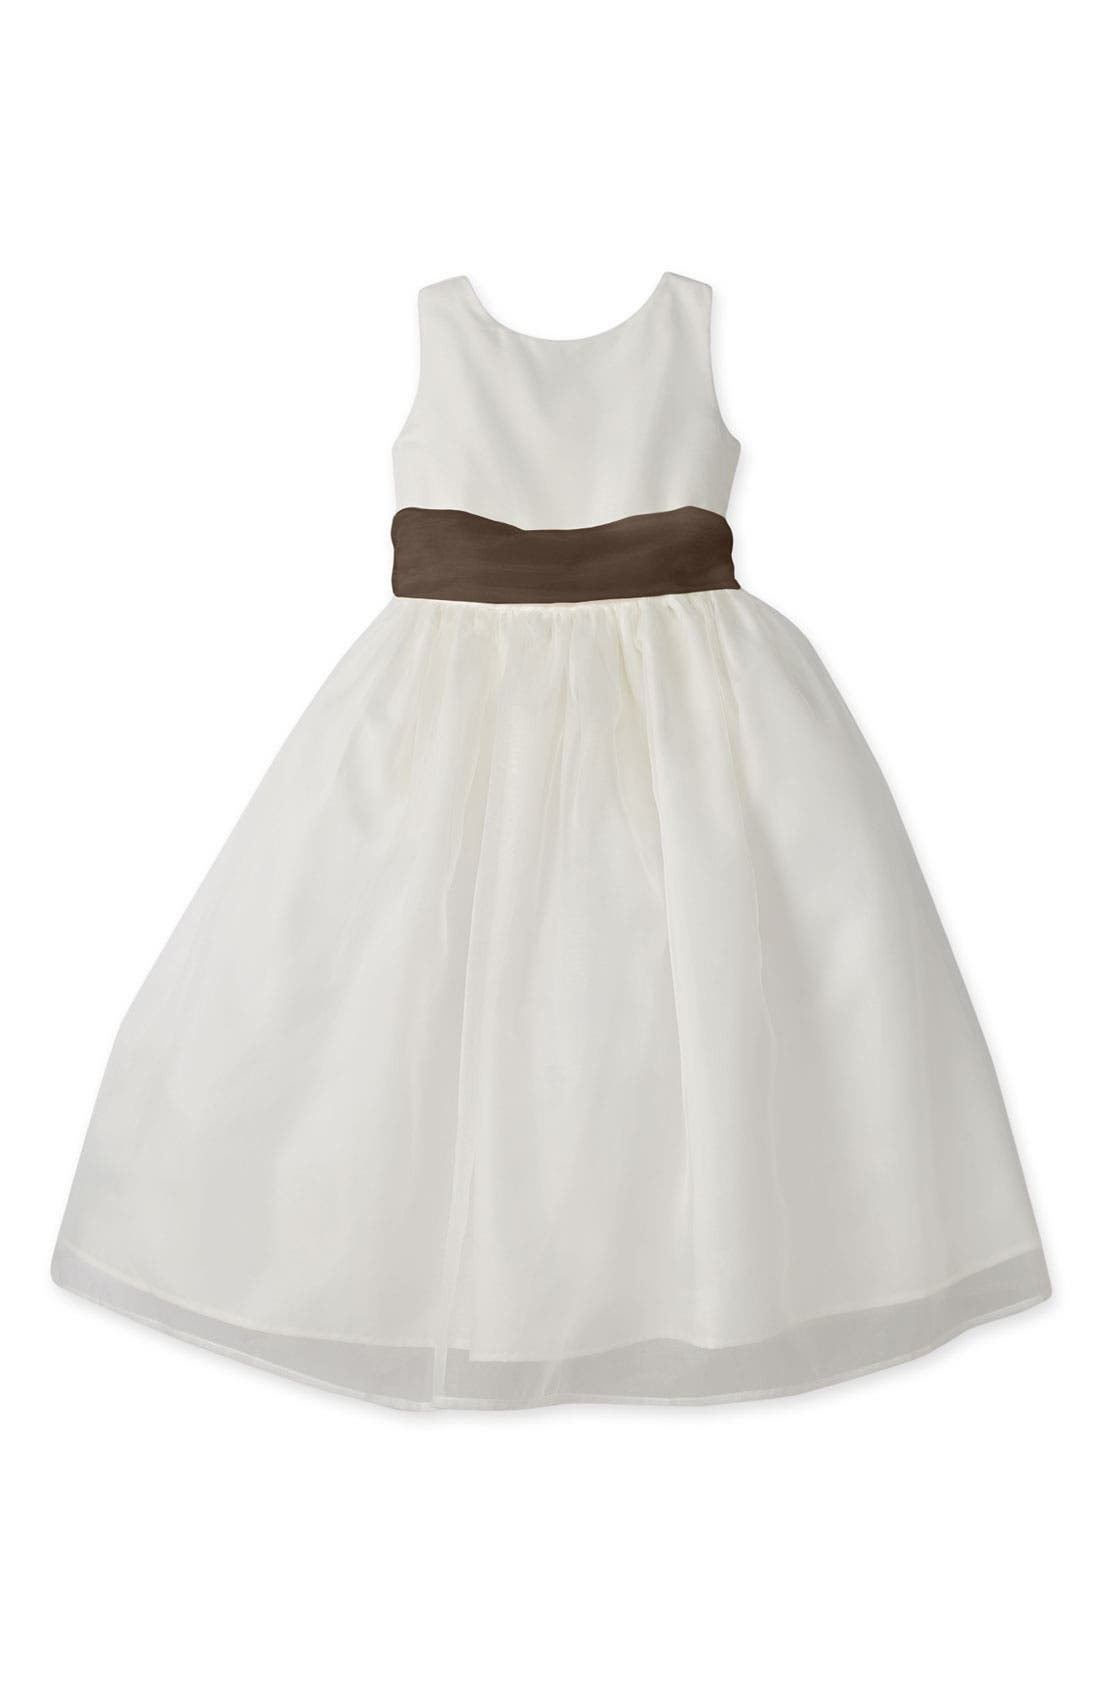 ee0196b96a12b Baby Girls' Clothing: Dresses, Bodysuits & Footies | Nordstrom